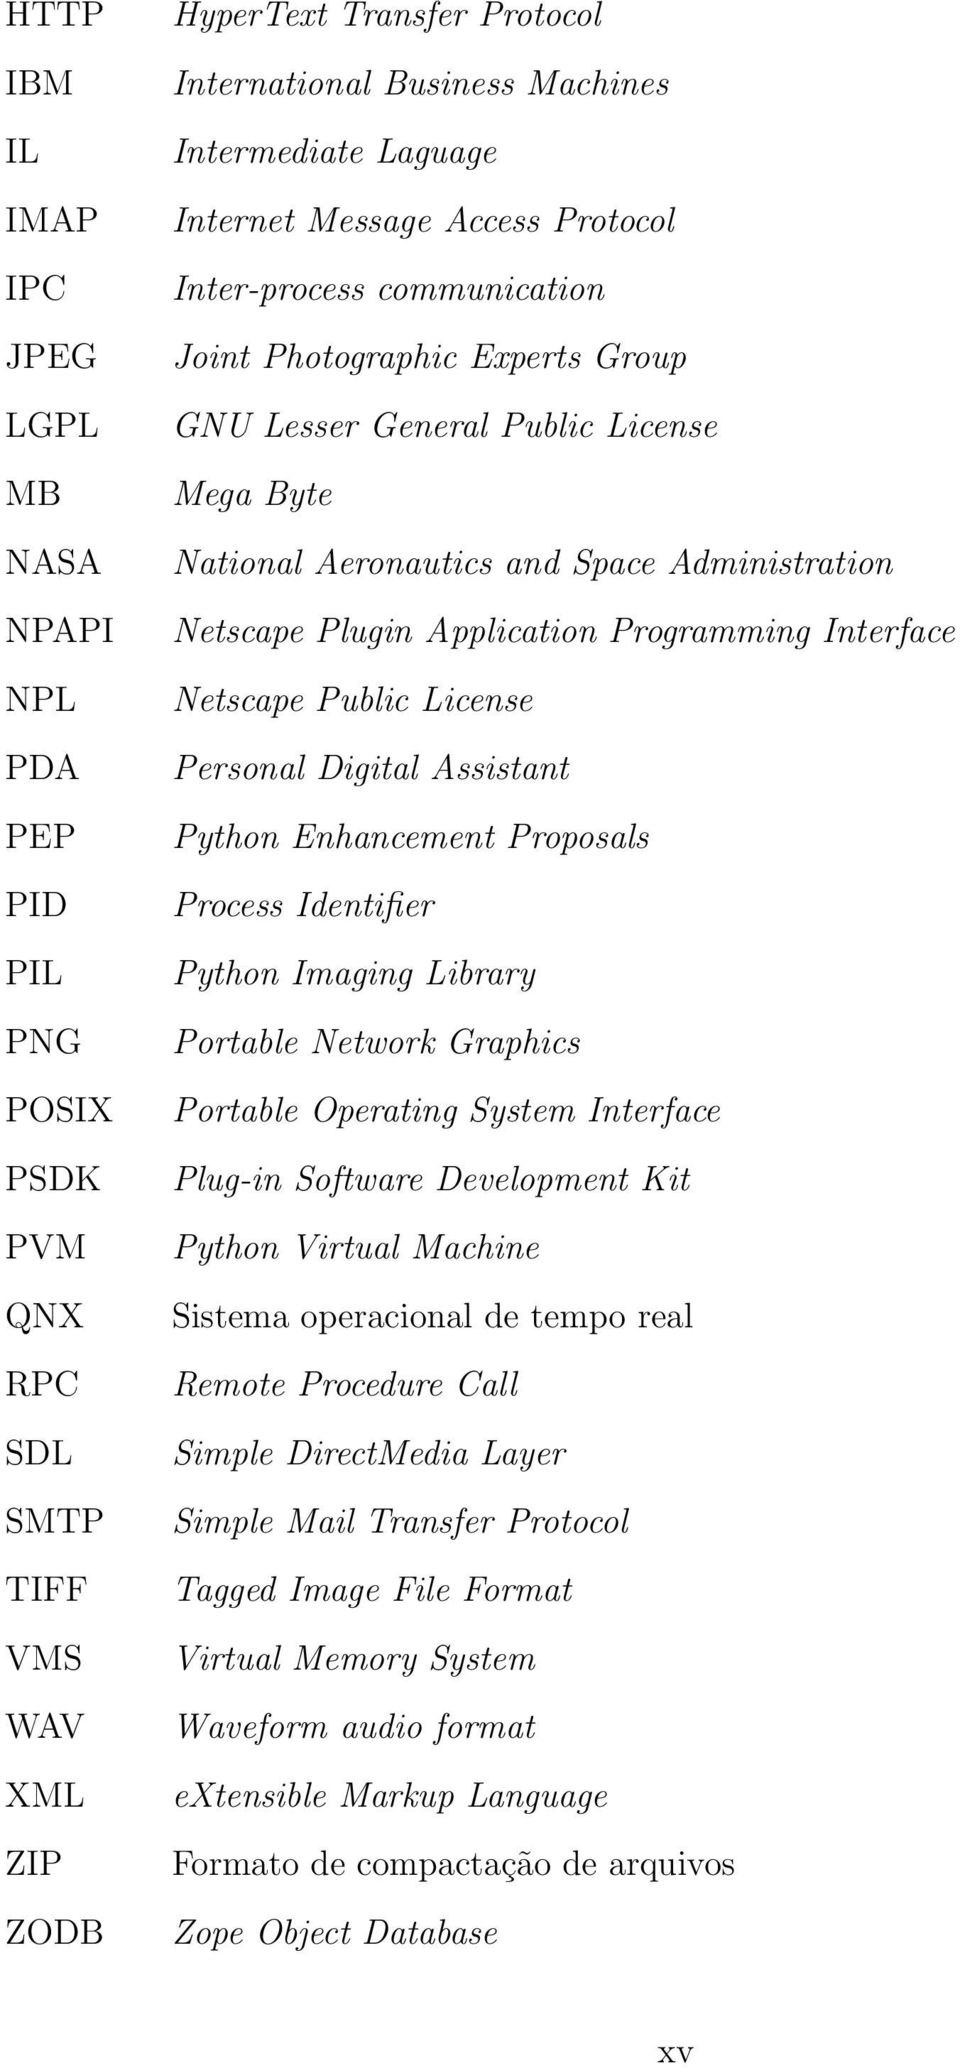 Netscape Plugin Application Programming Interface Netscape Public License Personal Digital Assistant Python Enhancement Proposals Process Identifier Python Imaging Library Portable Network Graphics